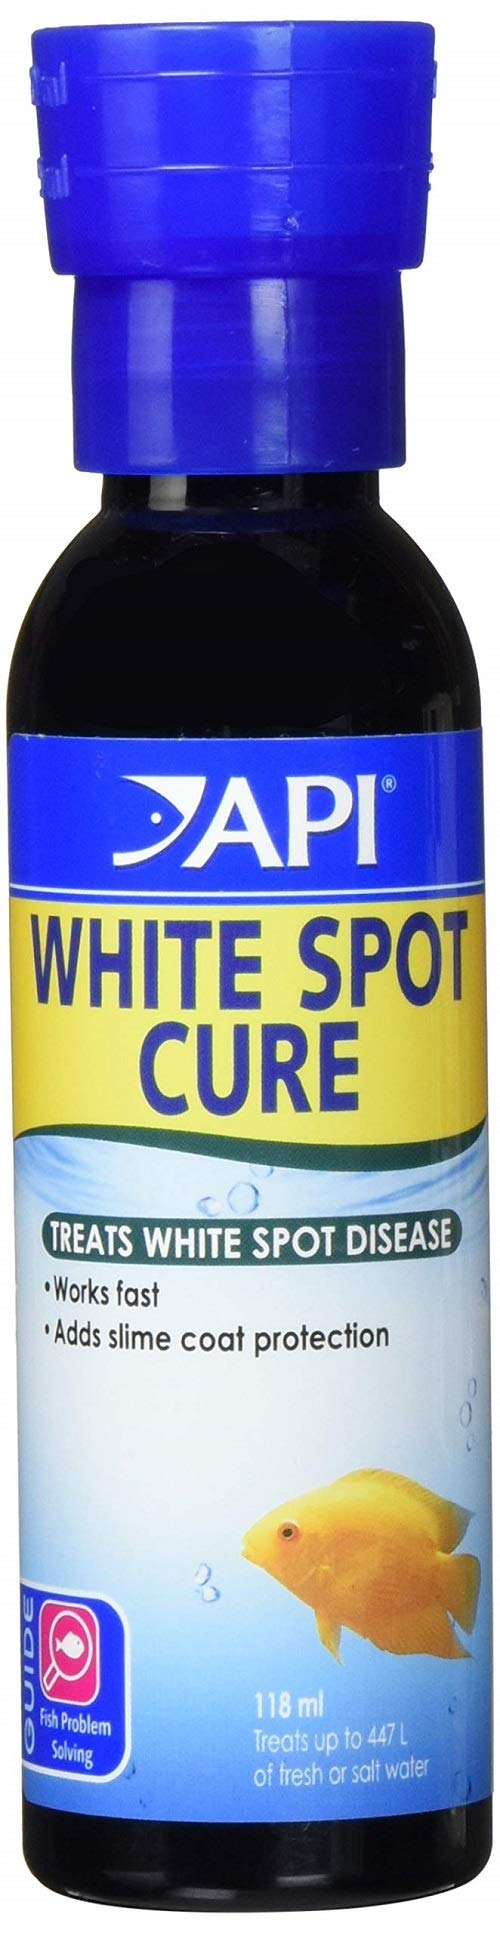 """API SUPER ICK CURE Fish remedy, Quickly treats """"ich"""" white spot disease, Use when symptoms of ich diseases appear"""